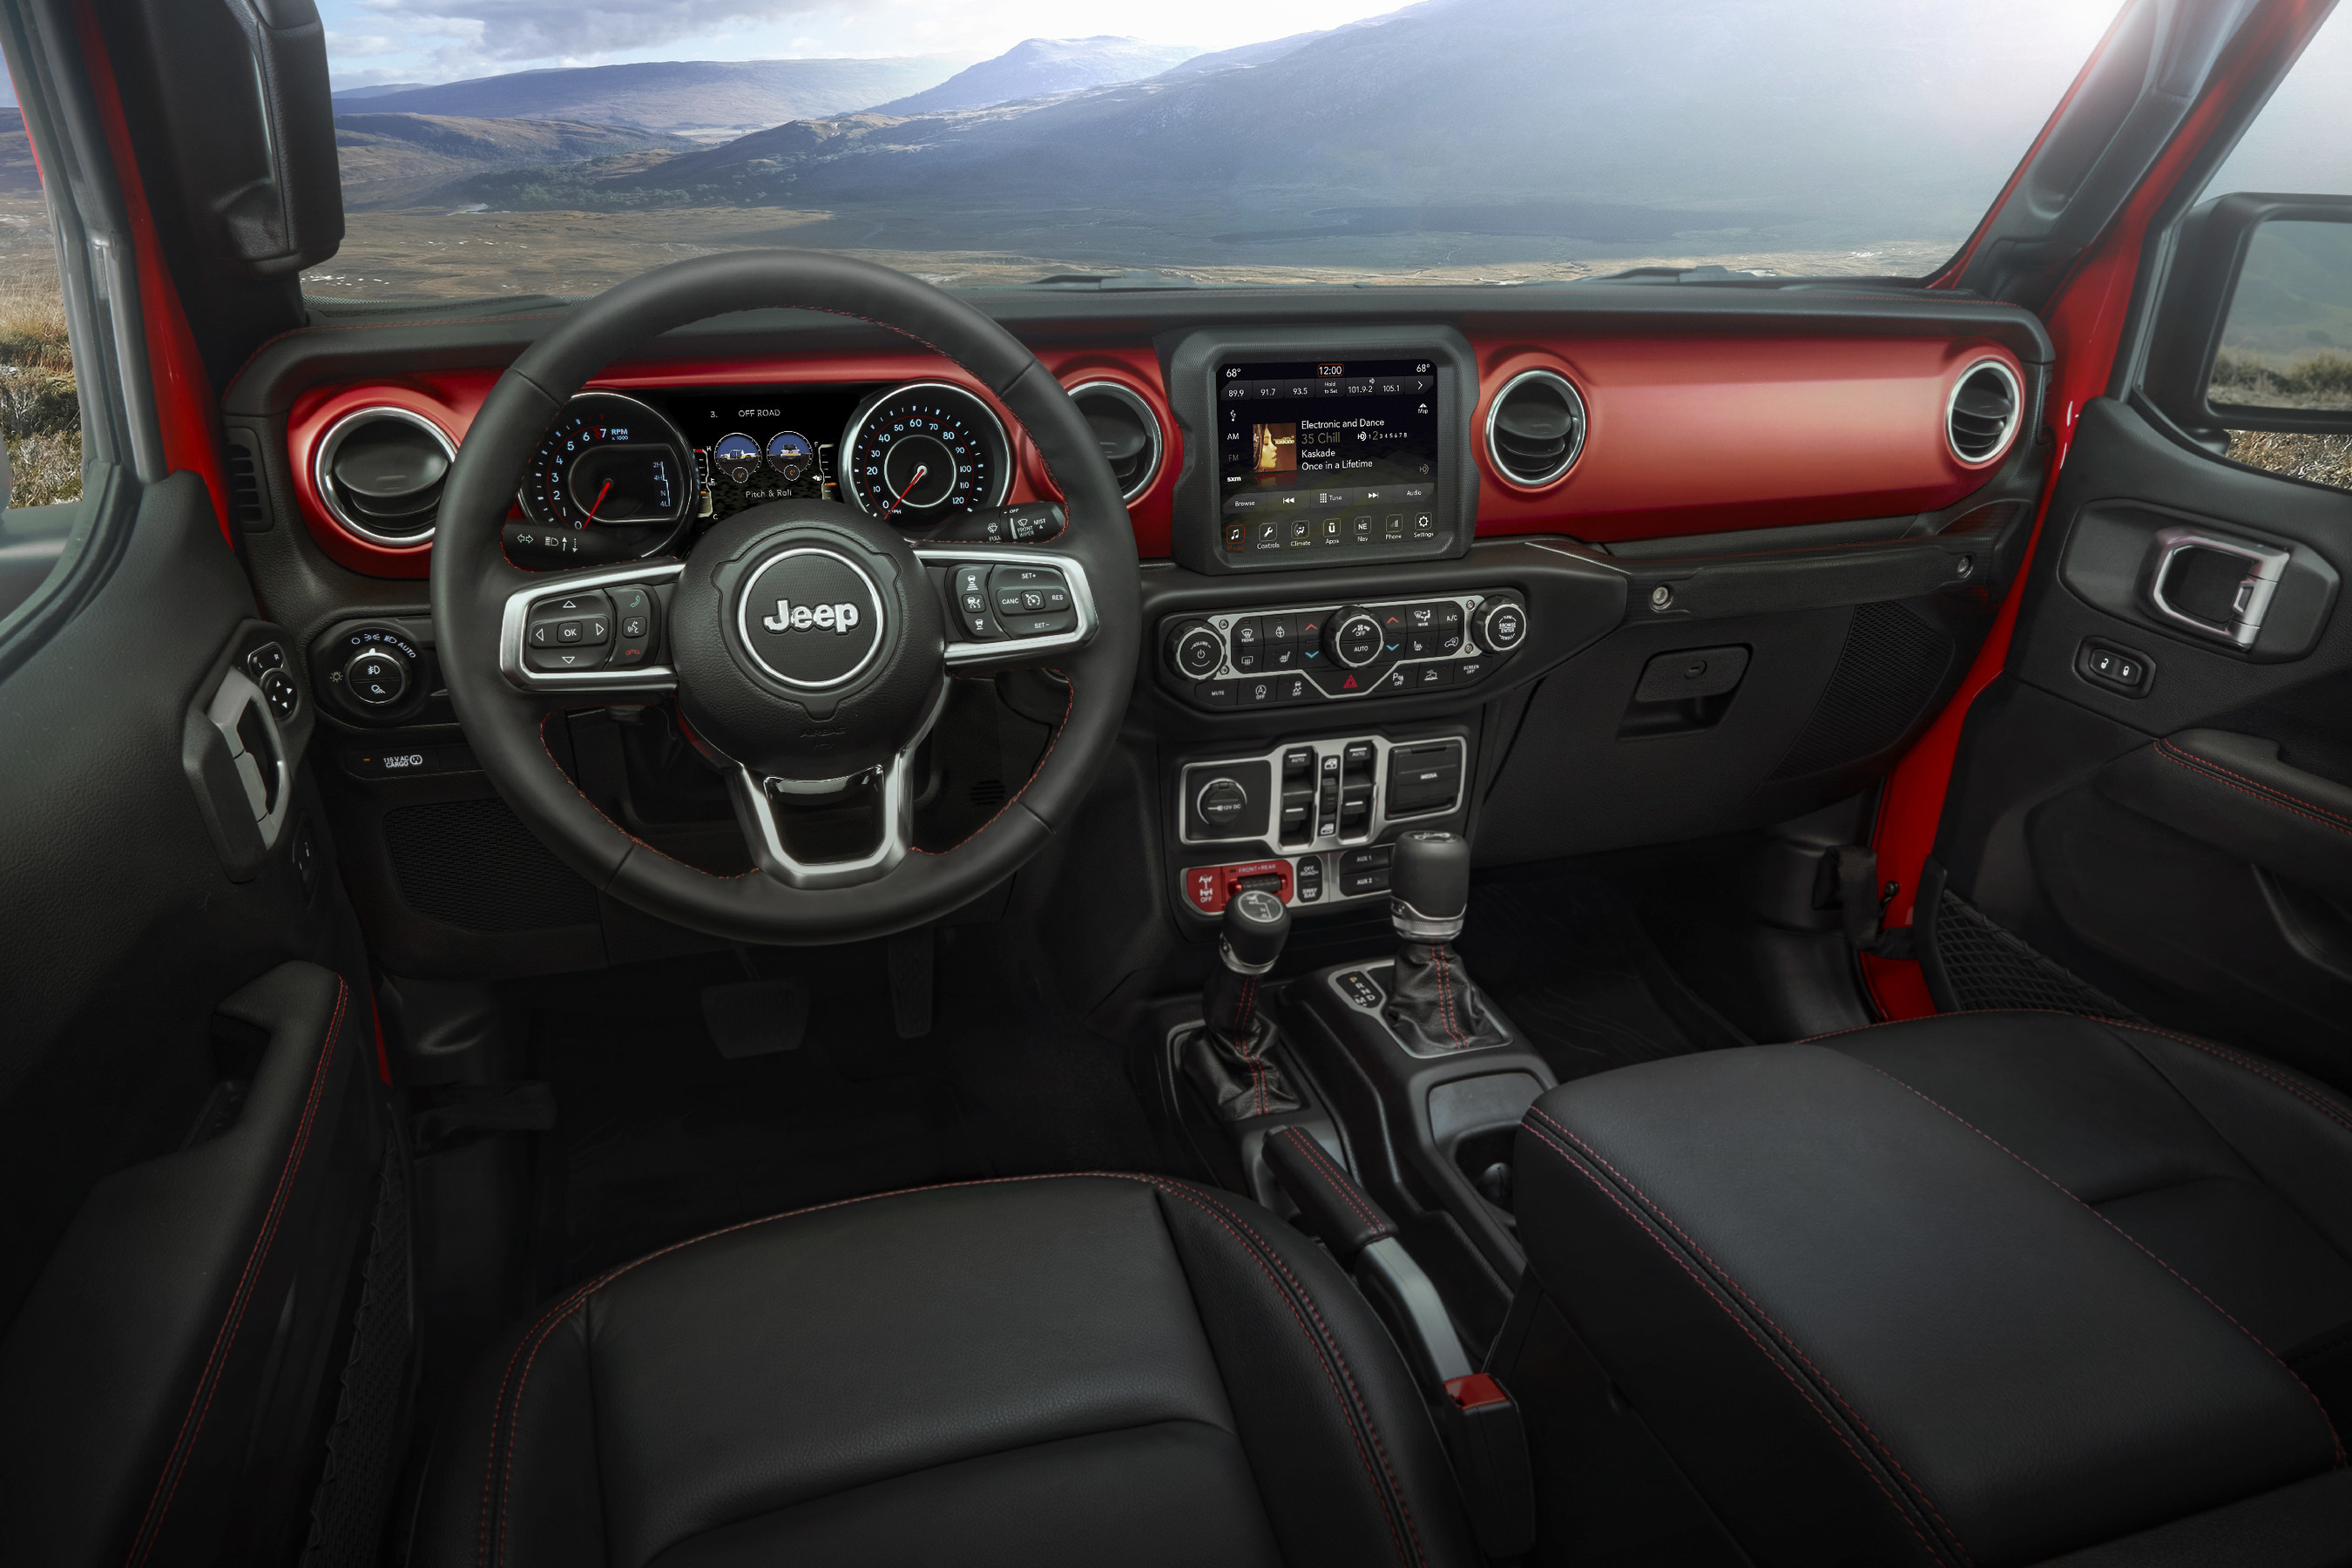 All New 2020 Jeep Gladiator Named To Wards 2019 10 Best Interiors List